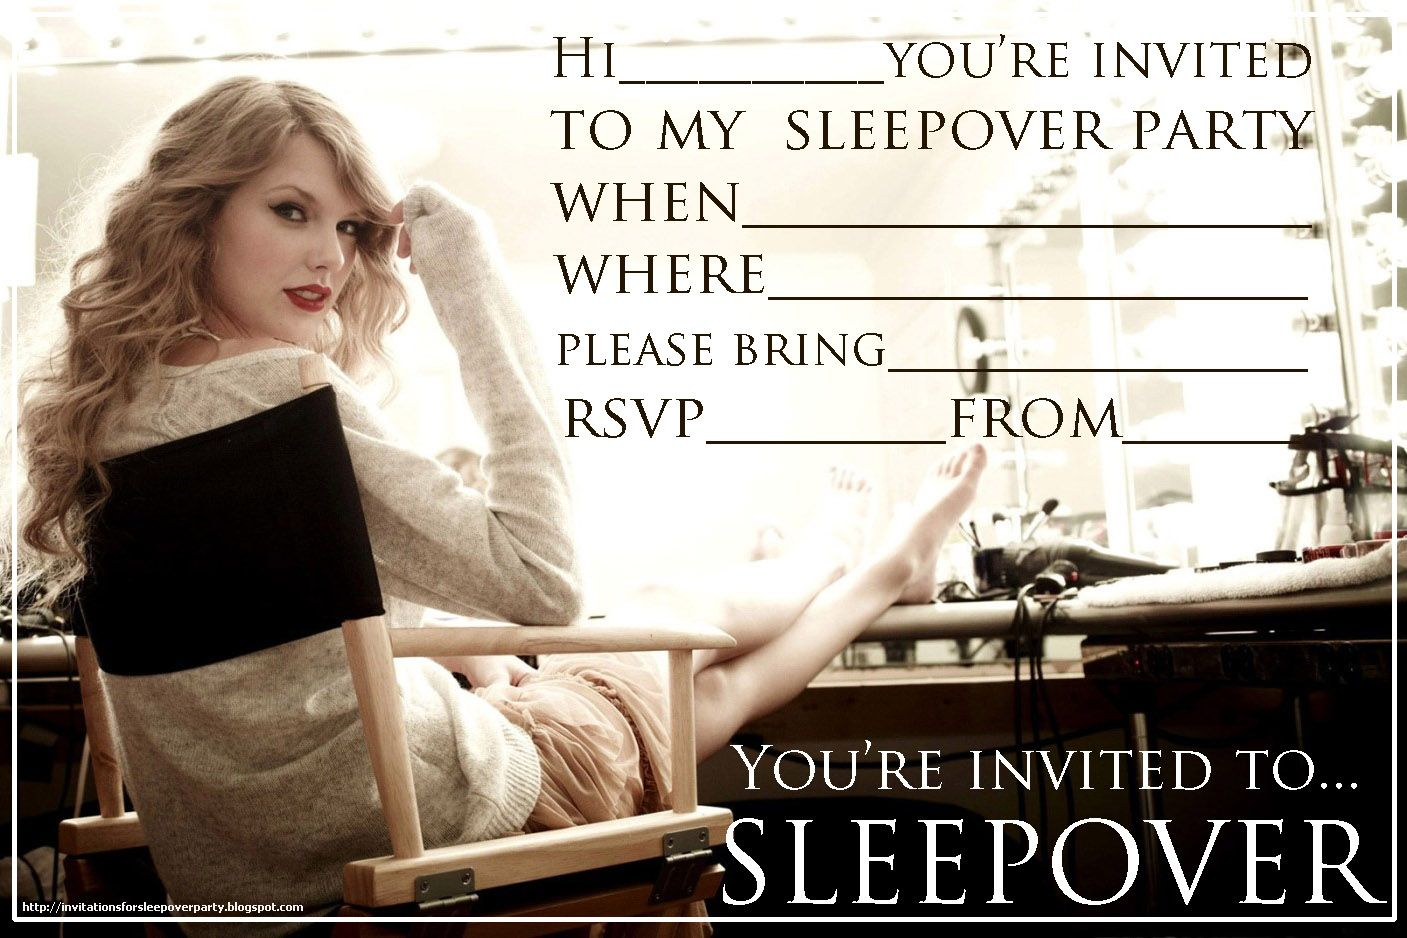 INVITATIONS FOR SLEEPOVER PARTY FEATURING TAYLOR SWIFT - FREE TO ...